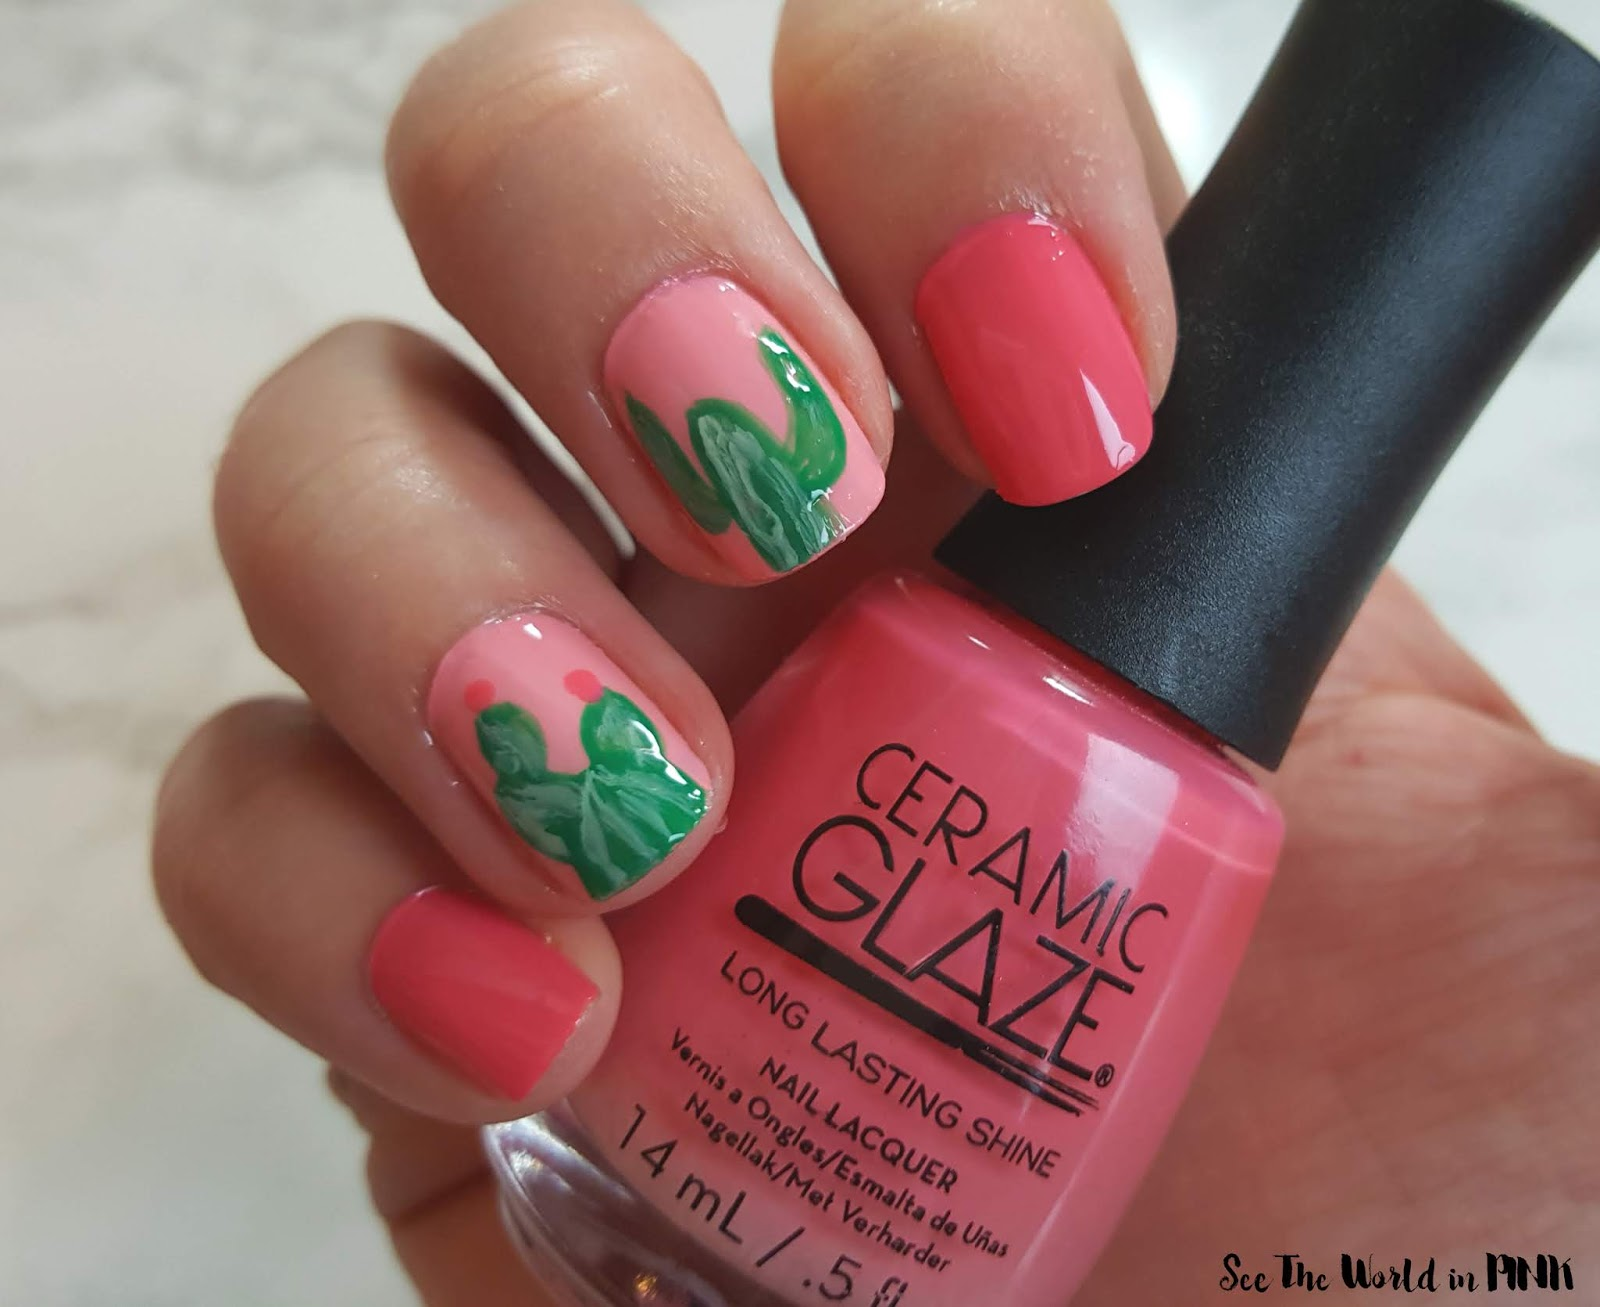 Manicure Monday - Coral Cactus Nails!